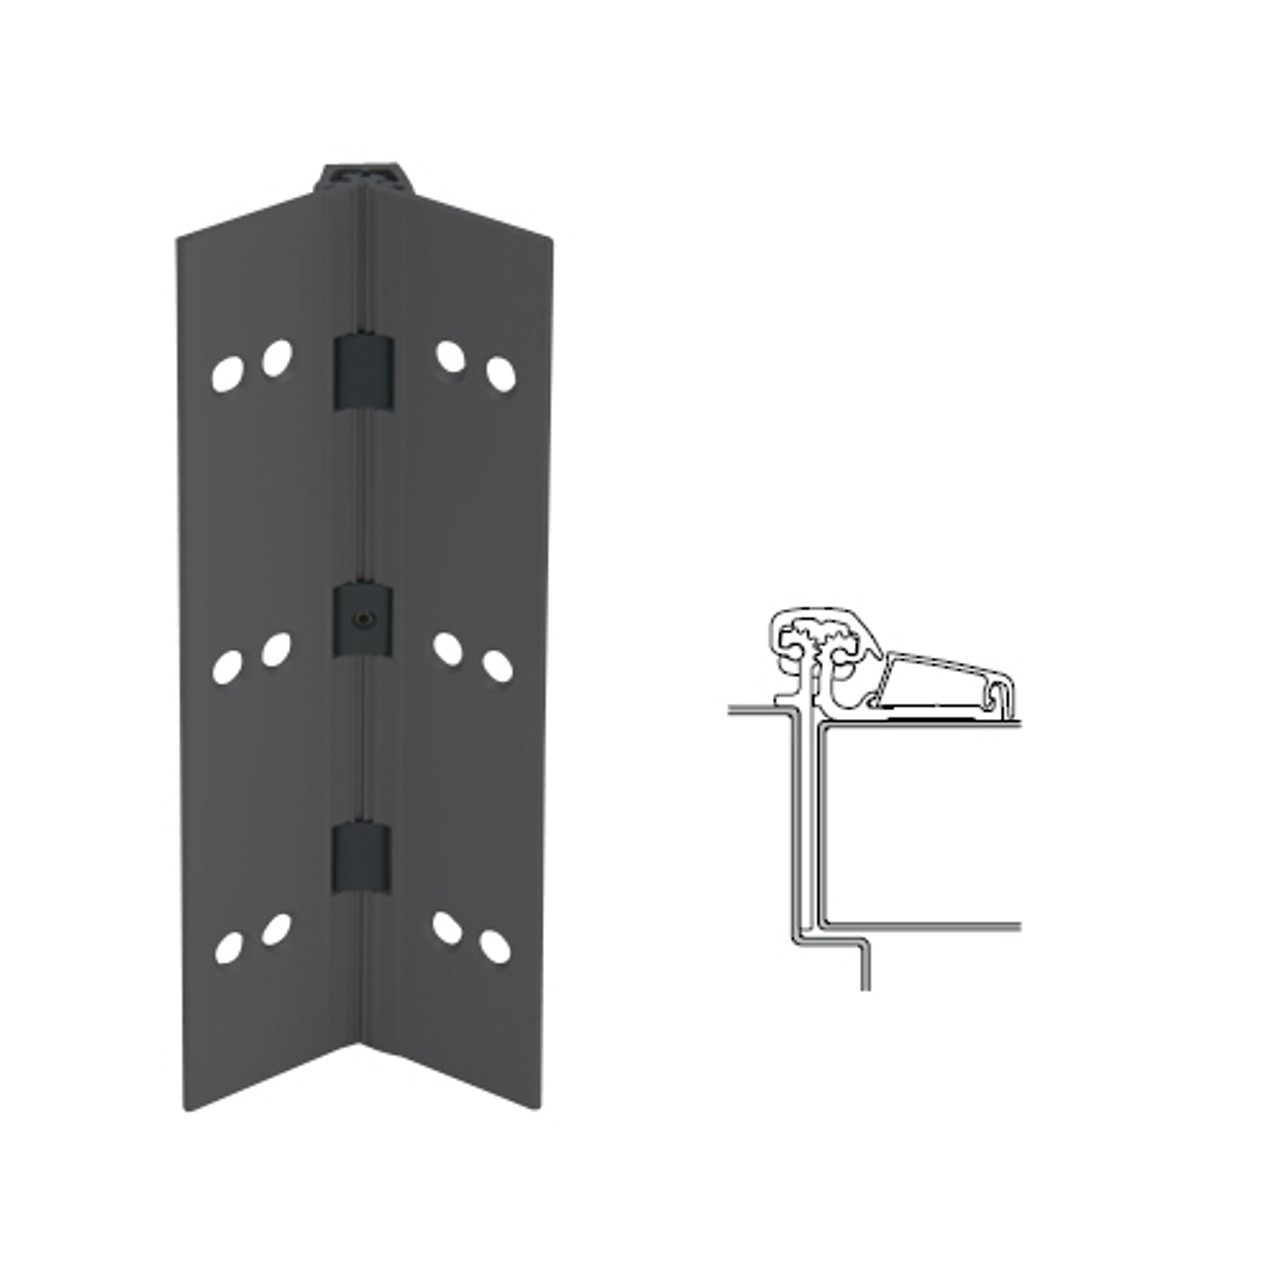 054XY-315AN-120-TFWD IVES Adjustable Half Surface Continuous Geared Hinges with Thread Forming Screws in Anodized Black